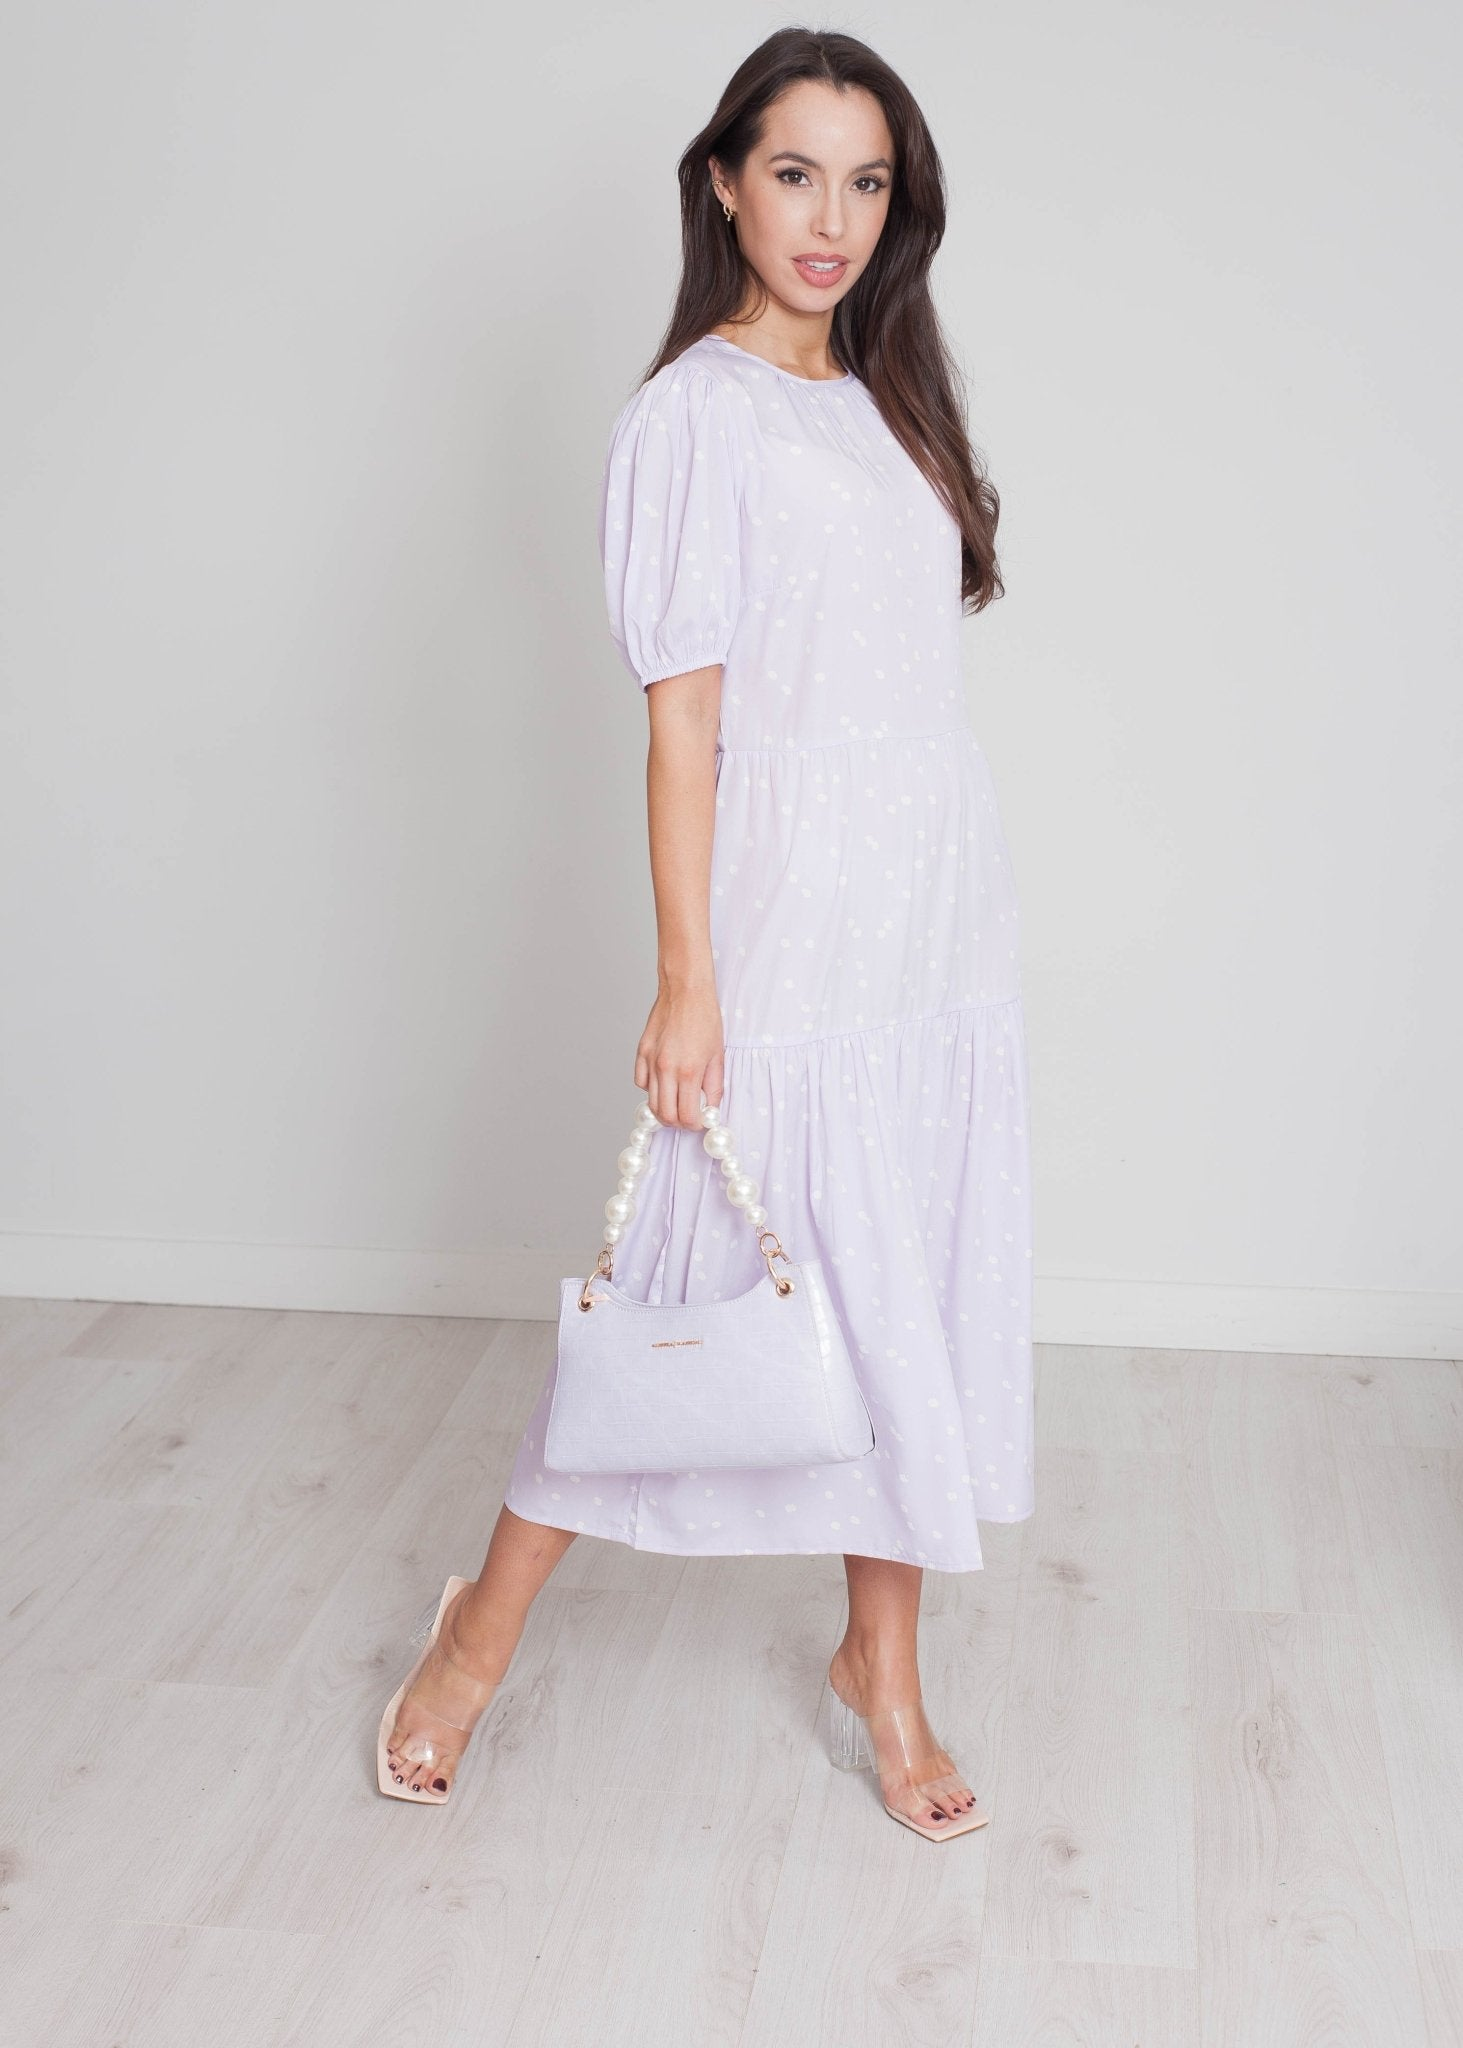 Freya Tiered Polka Dot Dress In Lilac - The Walk in Wardrobe